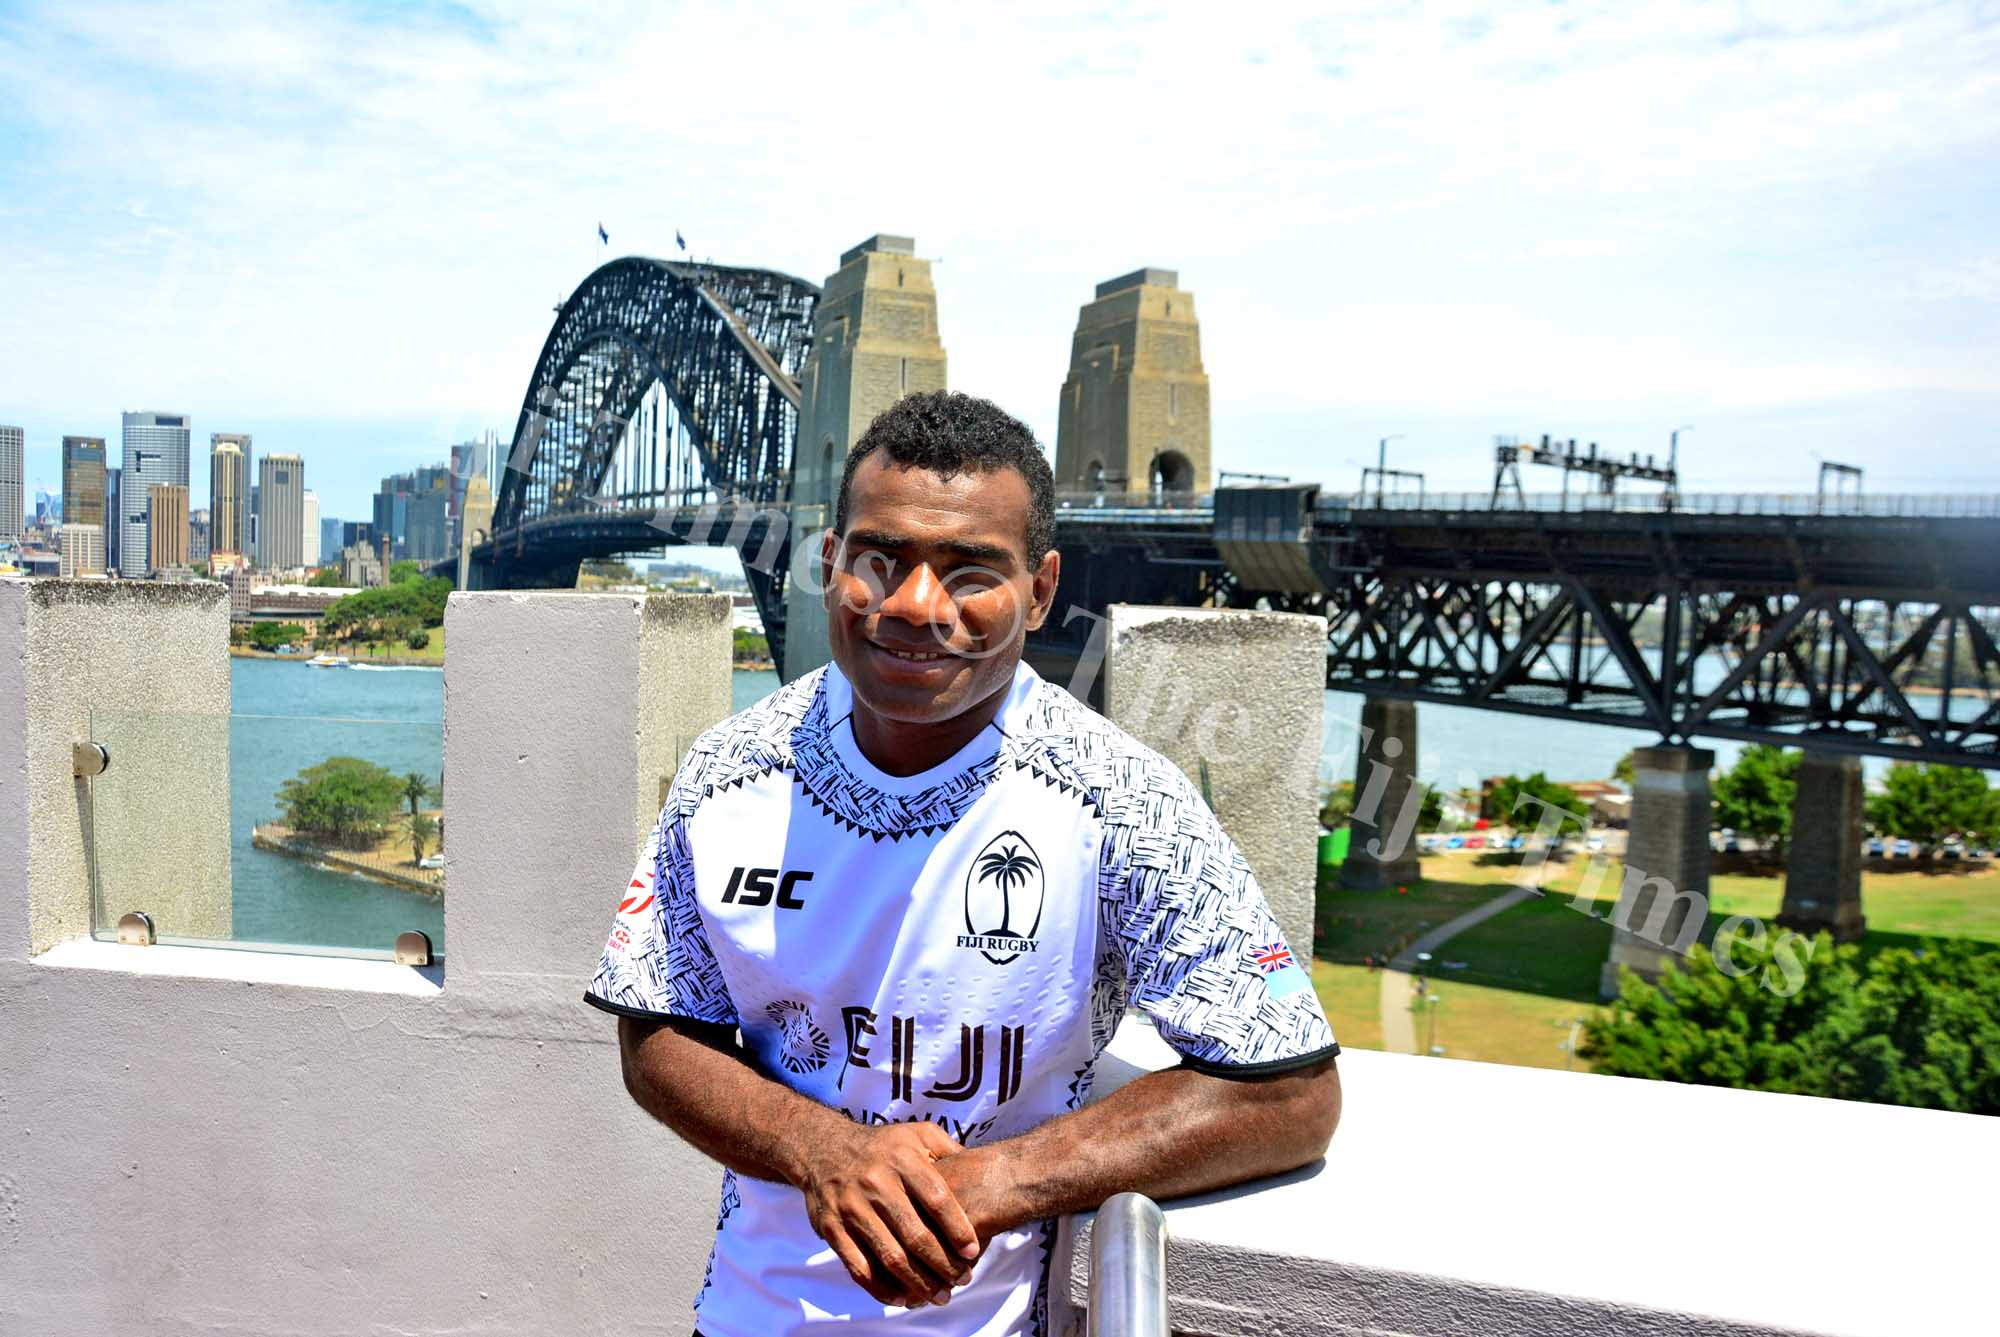 Fiji Airways Fiji men's captain Jerry Tuwai during a photoshoot at the St Aloysius College in Sydney, Australia on Wednesday, January 24, 2018. Picture: JONACANI LALAKOBAU